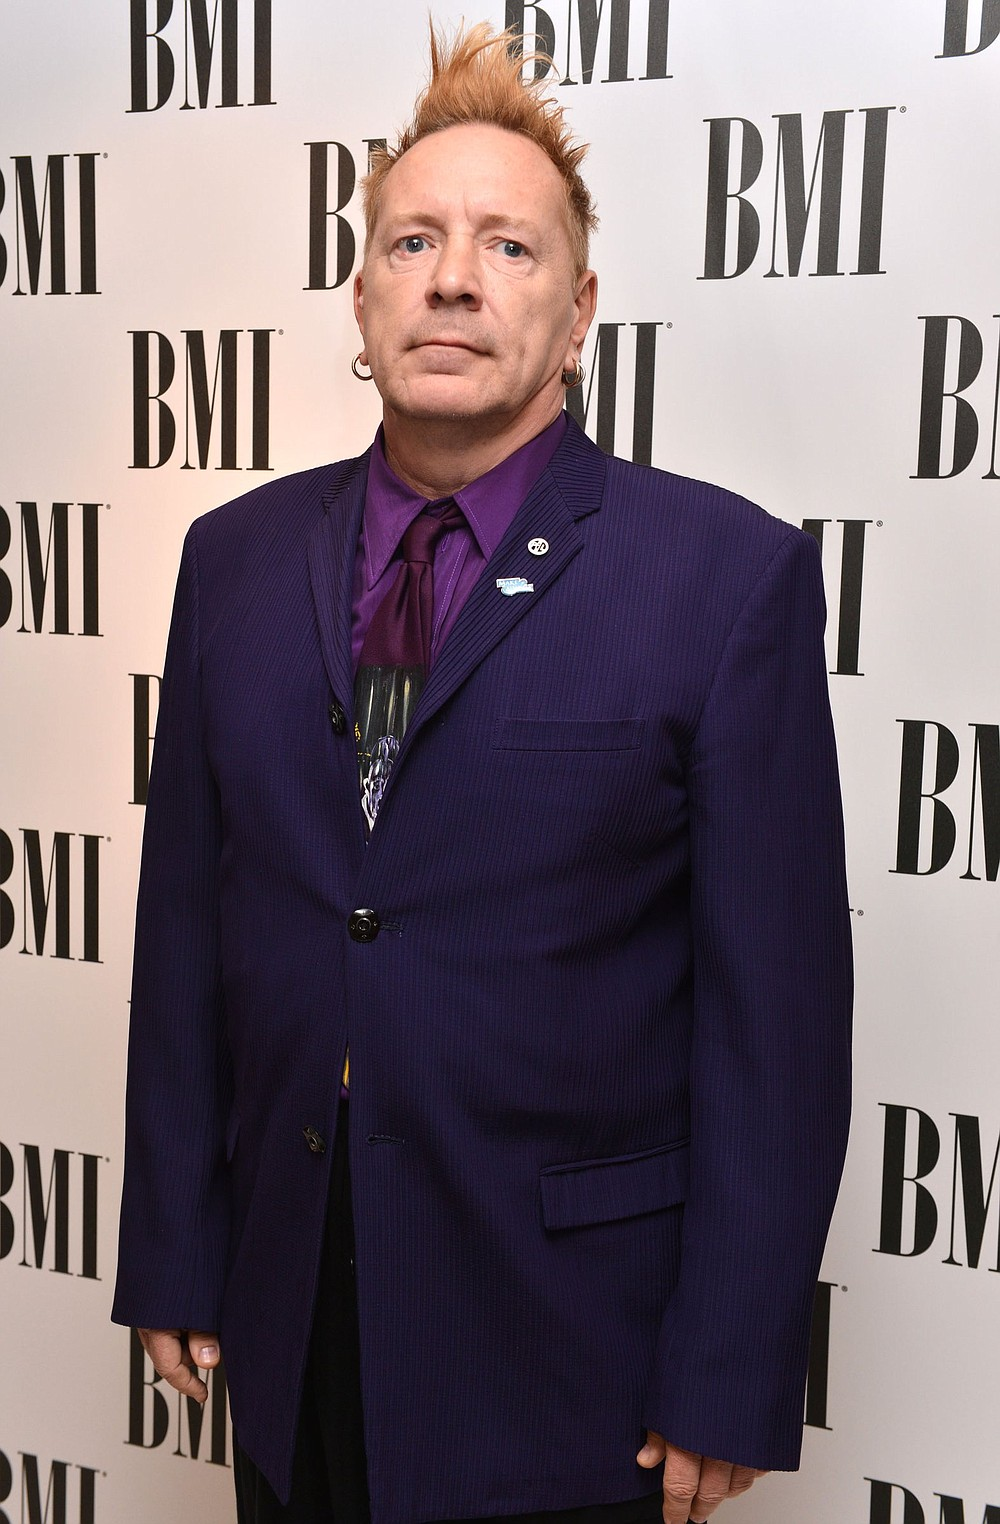 John Lydon at the BMI London Awards 2013, held at the Dorchester Hotel, London, on Tuesday, October 15, 2013. (Photo by Mark Allan/Invision/AP)